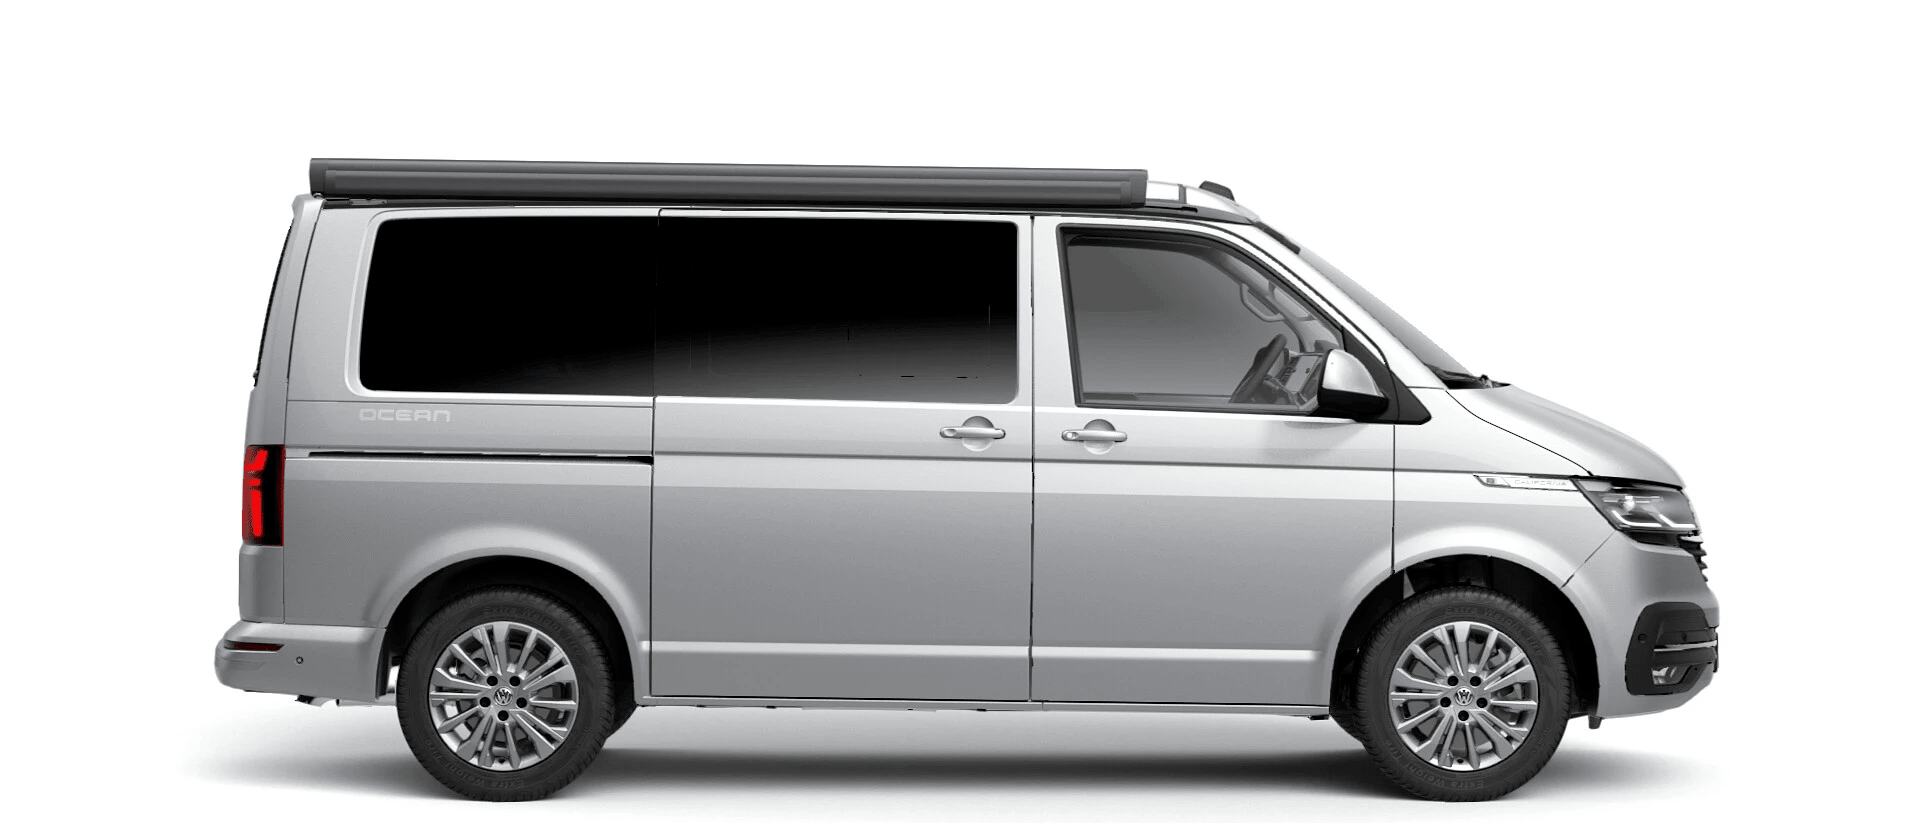 Volkswagen Van Range California - Available In Metallic Reflex Silver